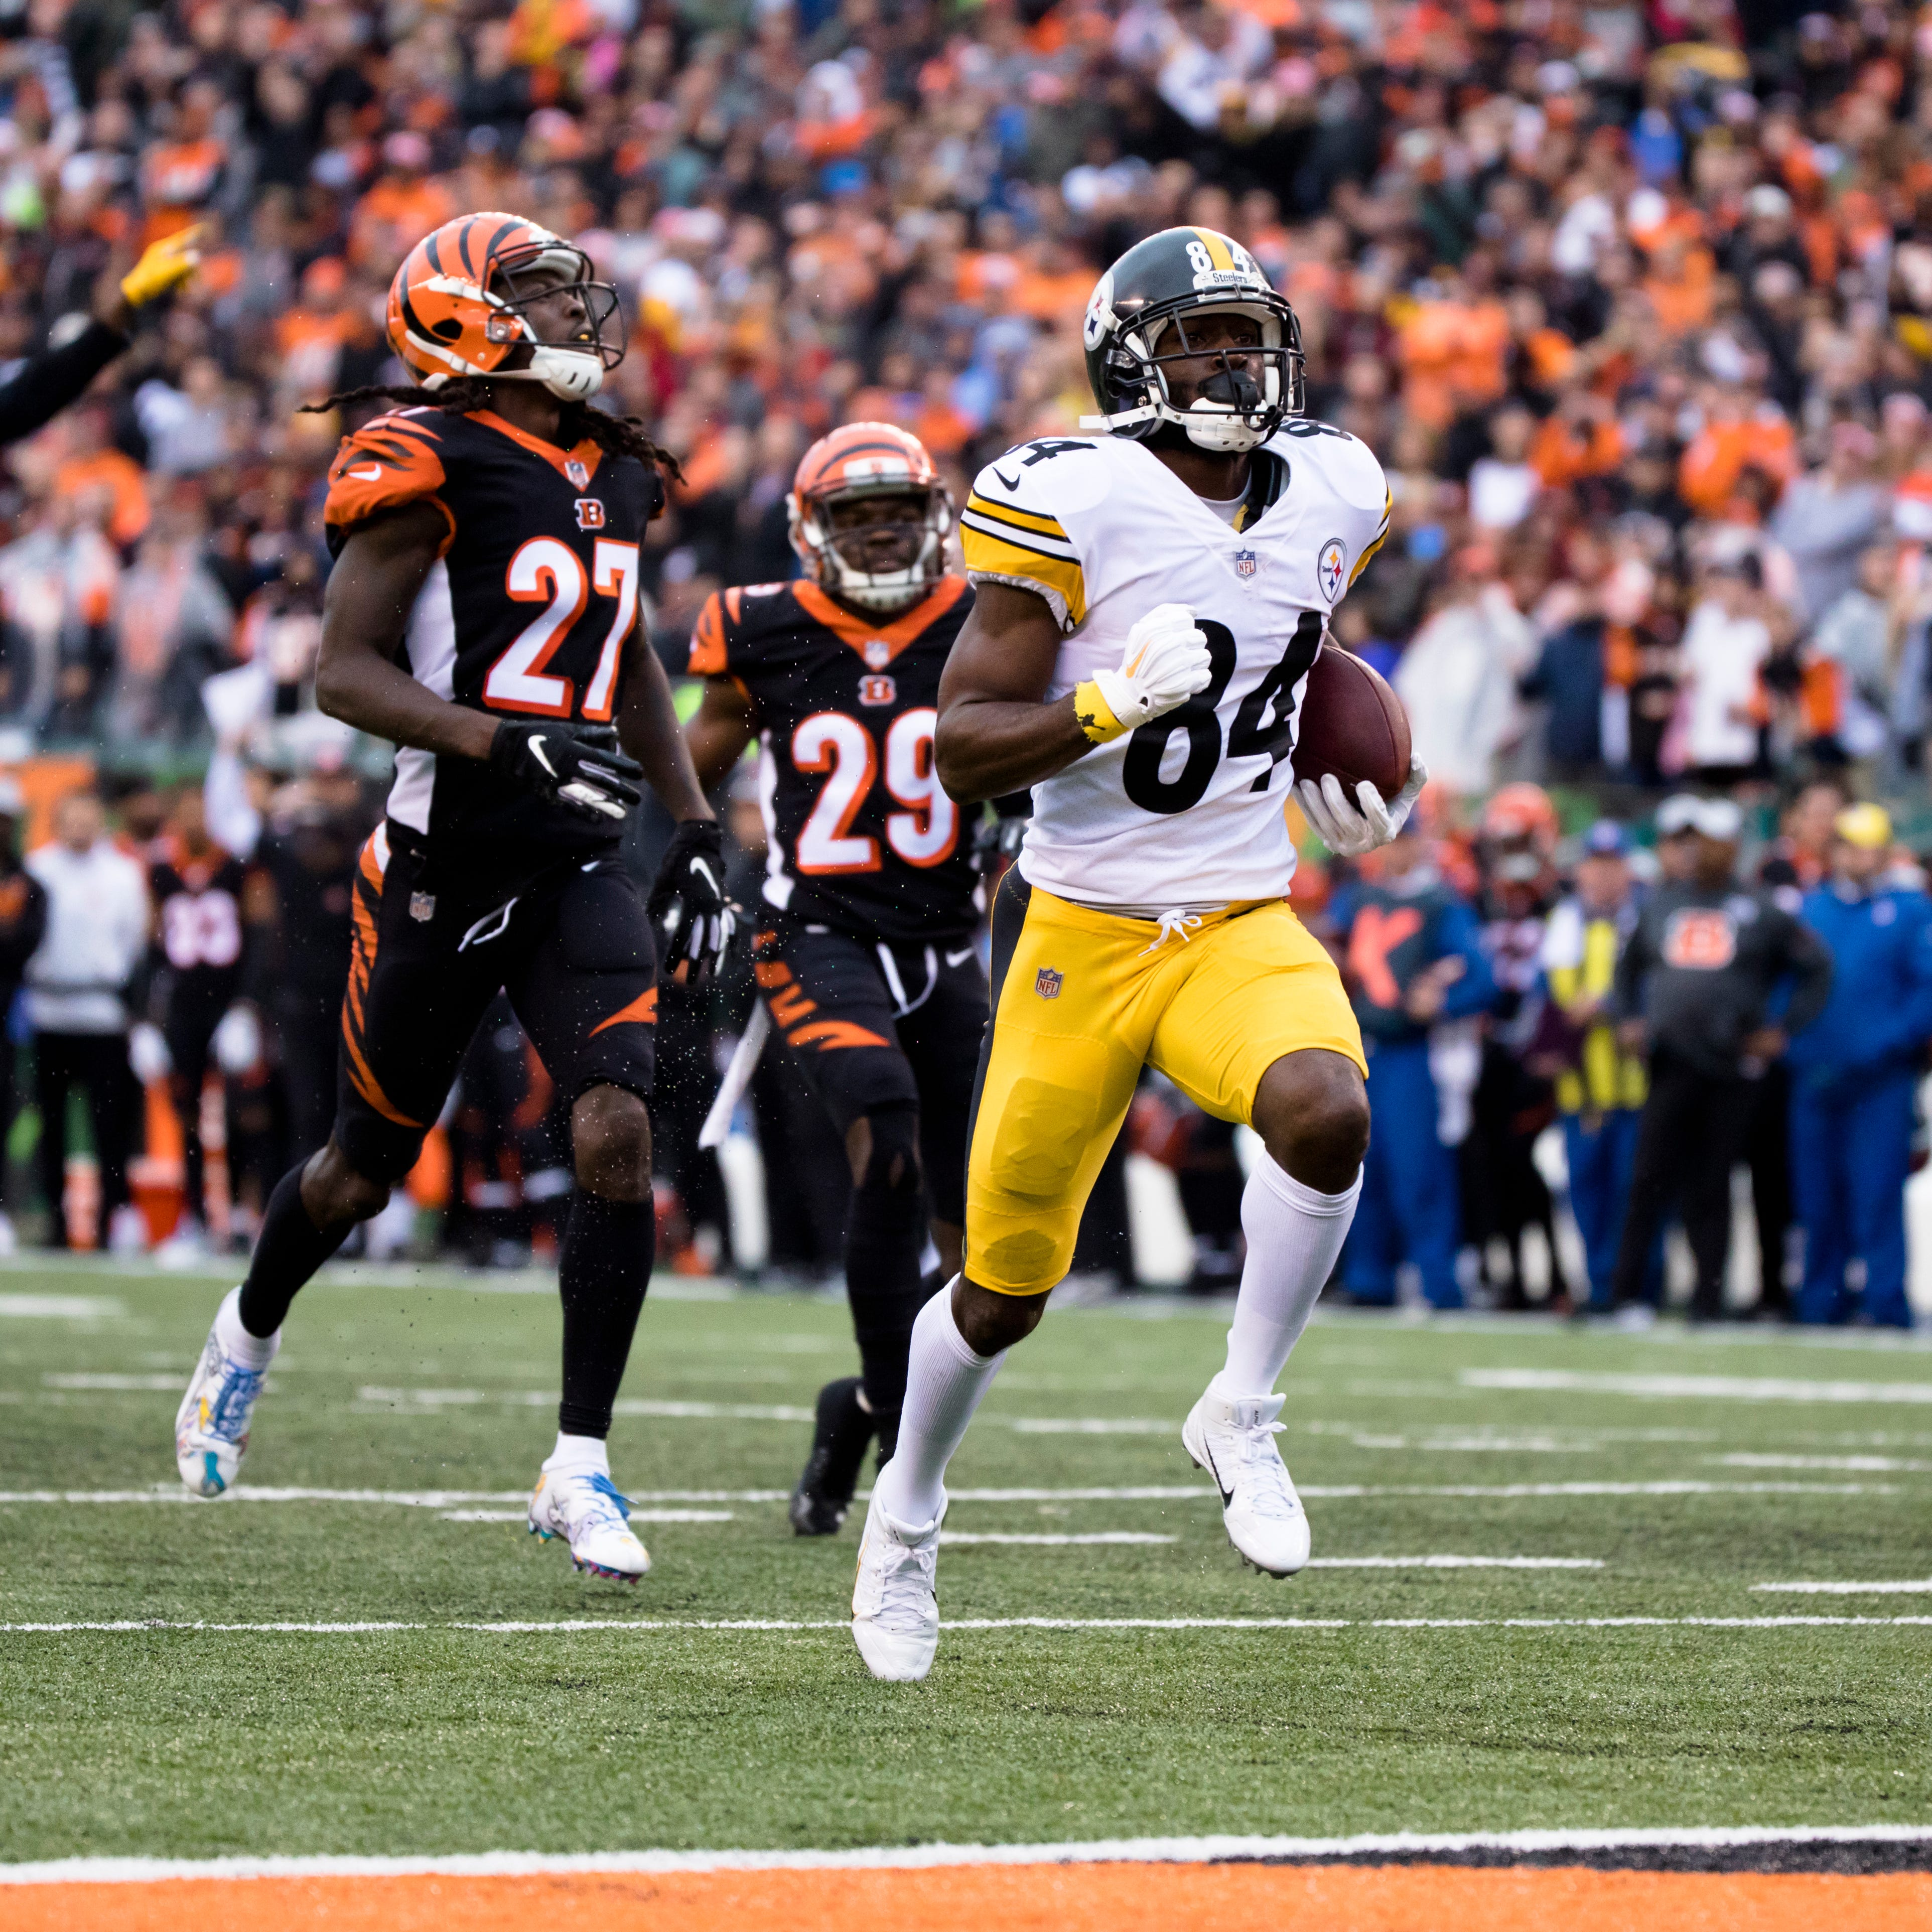 Analysis: Pittsburgh Steelers win latest chapter of heartbreak for Cincinnati Bengals